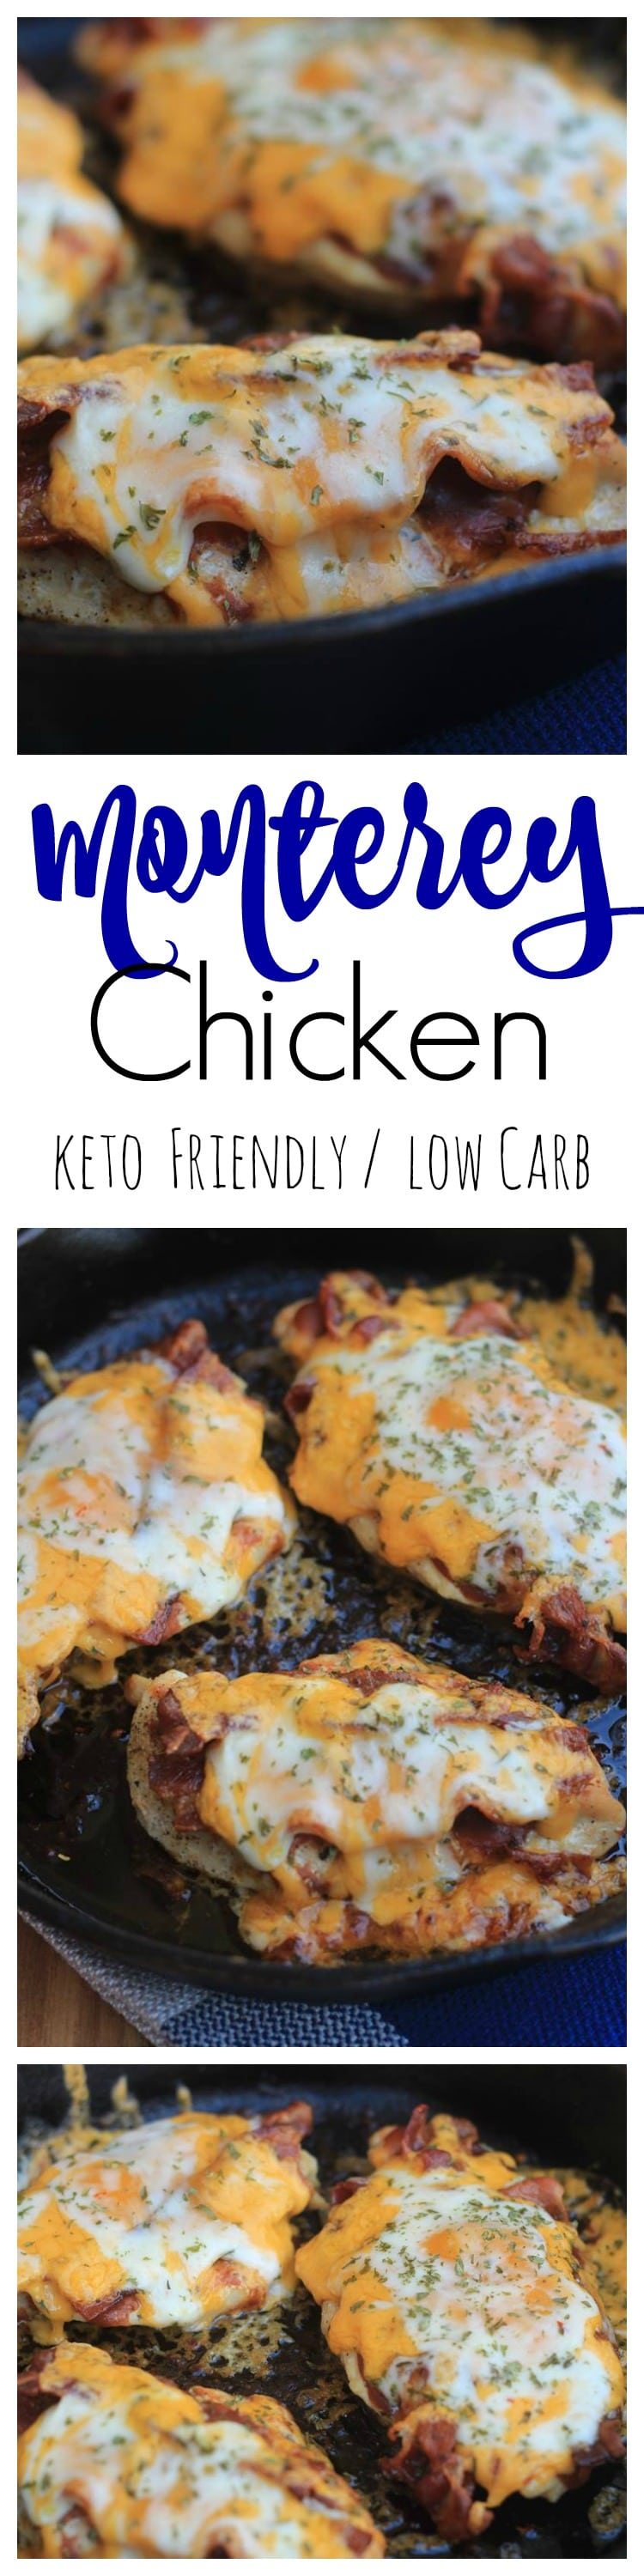 Keto Monterey Chicken is one of our favorite go-to low carb meals that is ready in minutes using the cast iron skillet cooking method! A perfect keto chicken dinner recipe and cast iron skillet meal that everyone will love!